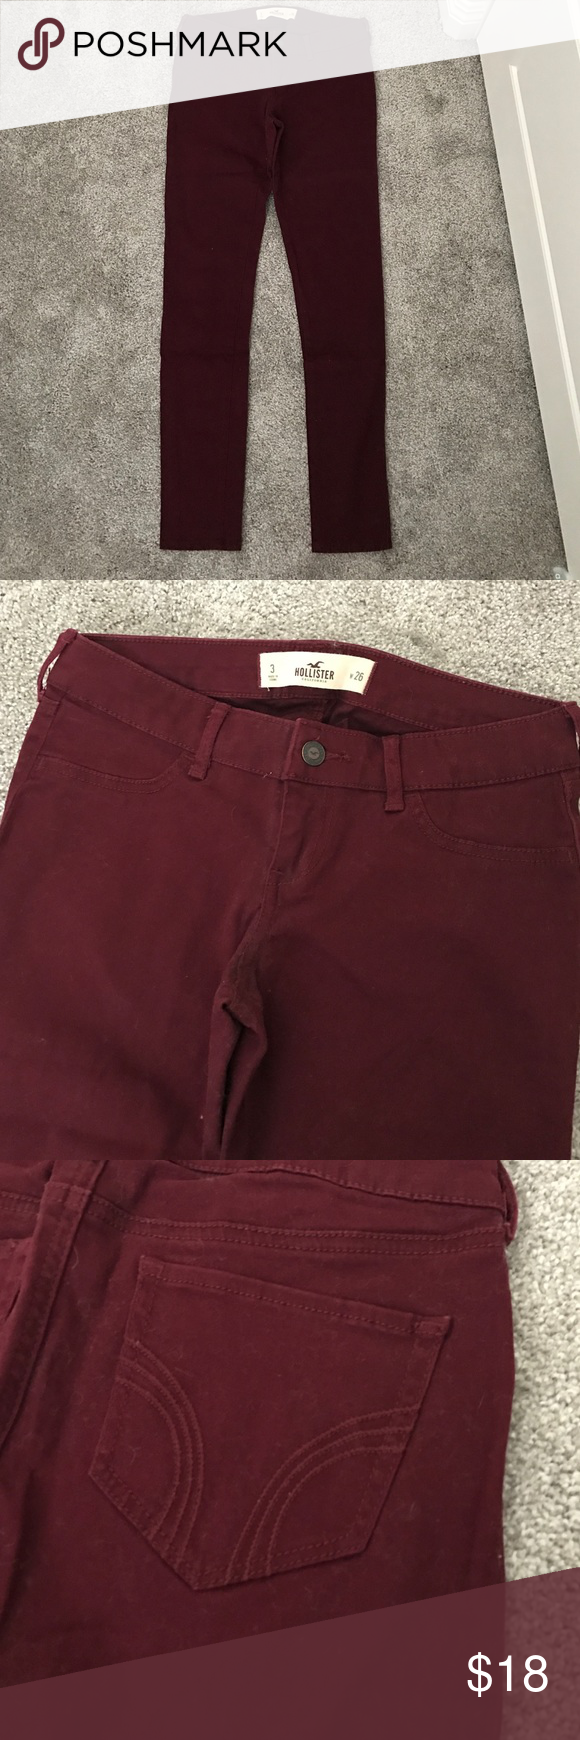 Hollister burgundy skinny jeans These dark burgundy skinnies are made in a very soft material that feels slightly velvety. They were only worn a couple times and are a must-have in your winter wardrobe. Hollister Jeans Skinny